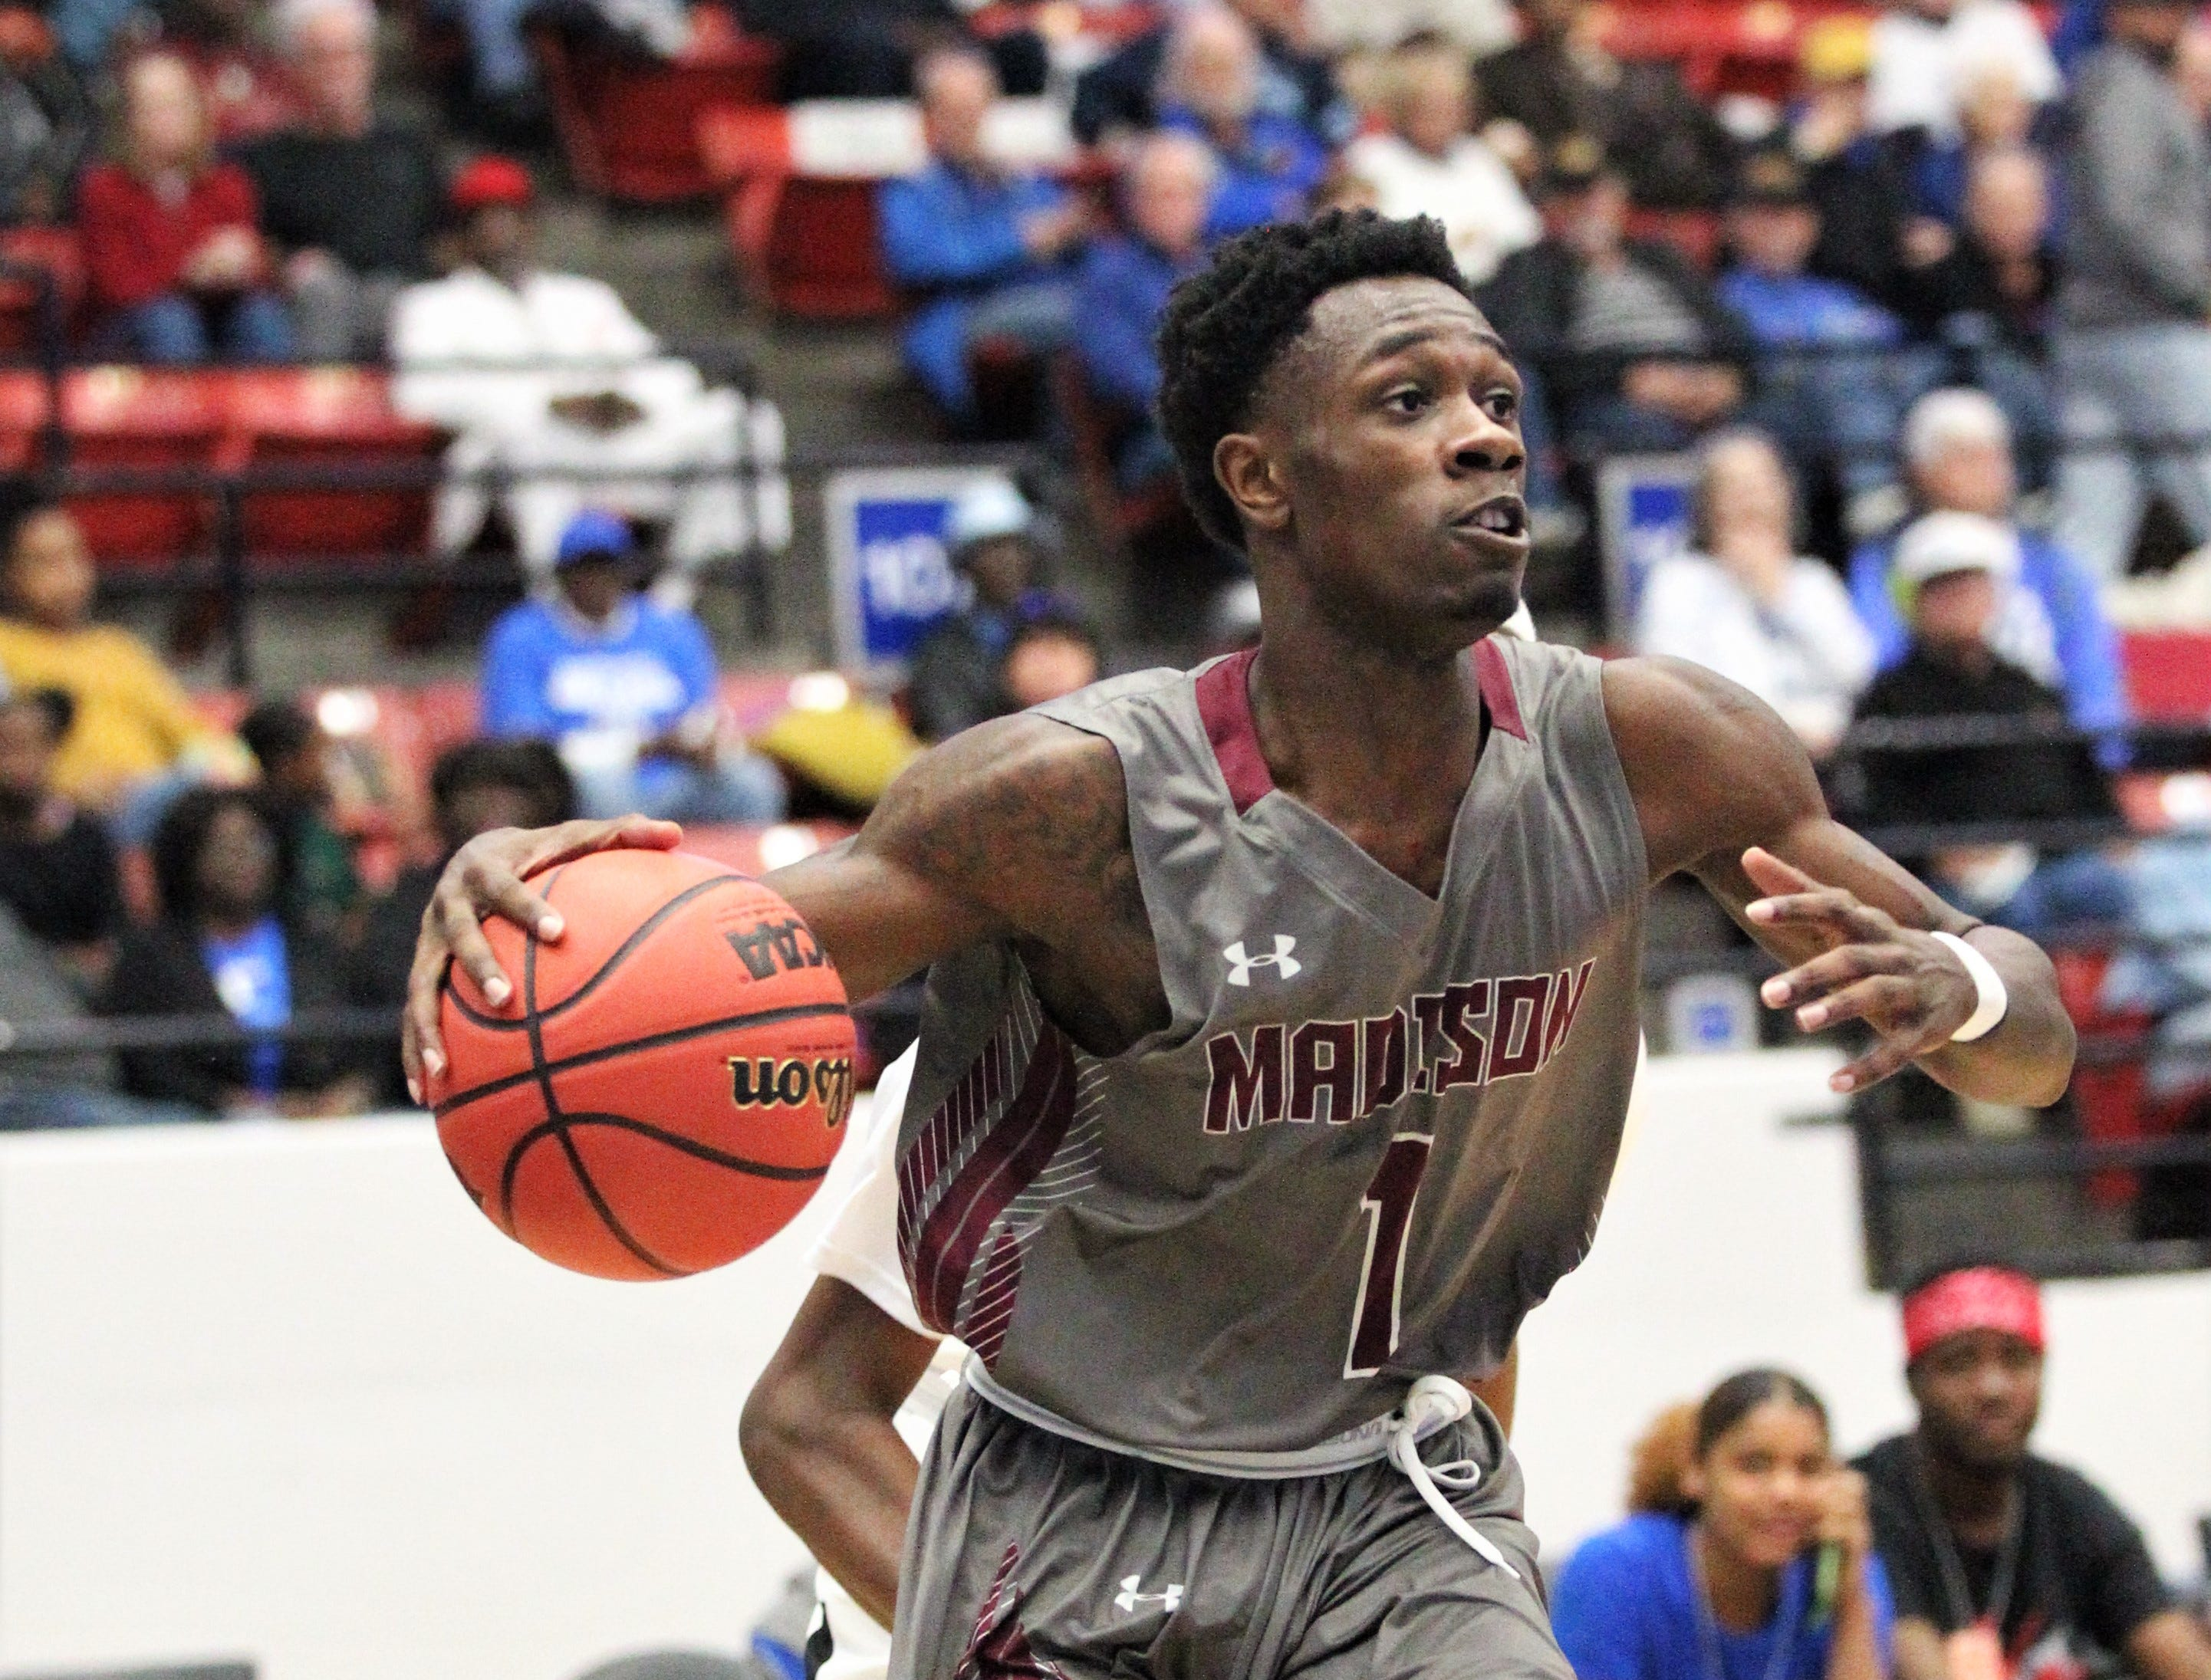 Madison County's basketball team captured a Class 1A state championship with a 62-60 overtime victory against Wildwood at the RP Funding Center in Lakeland on Tuesday.